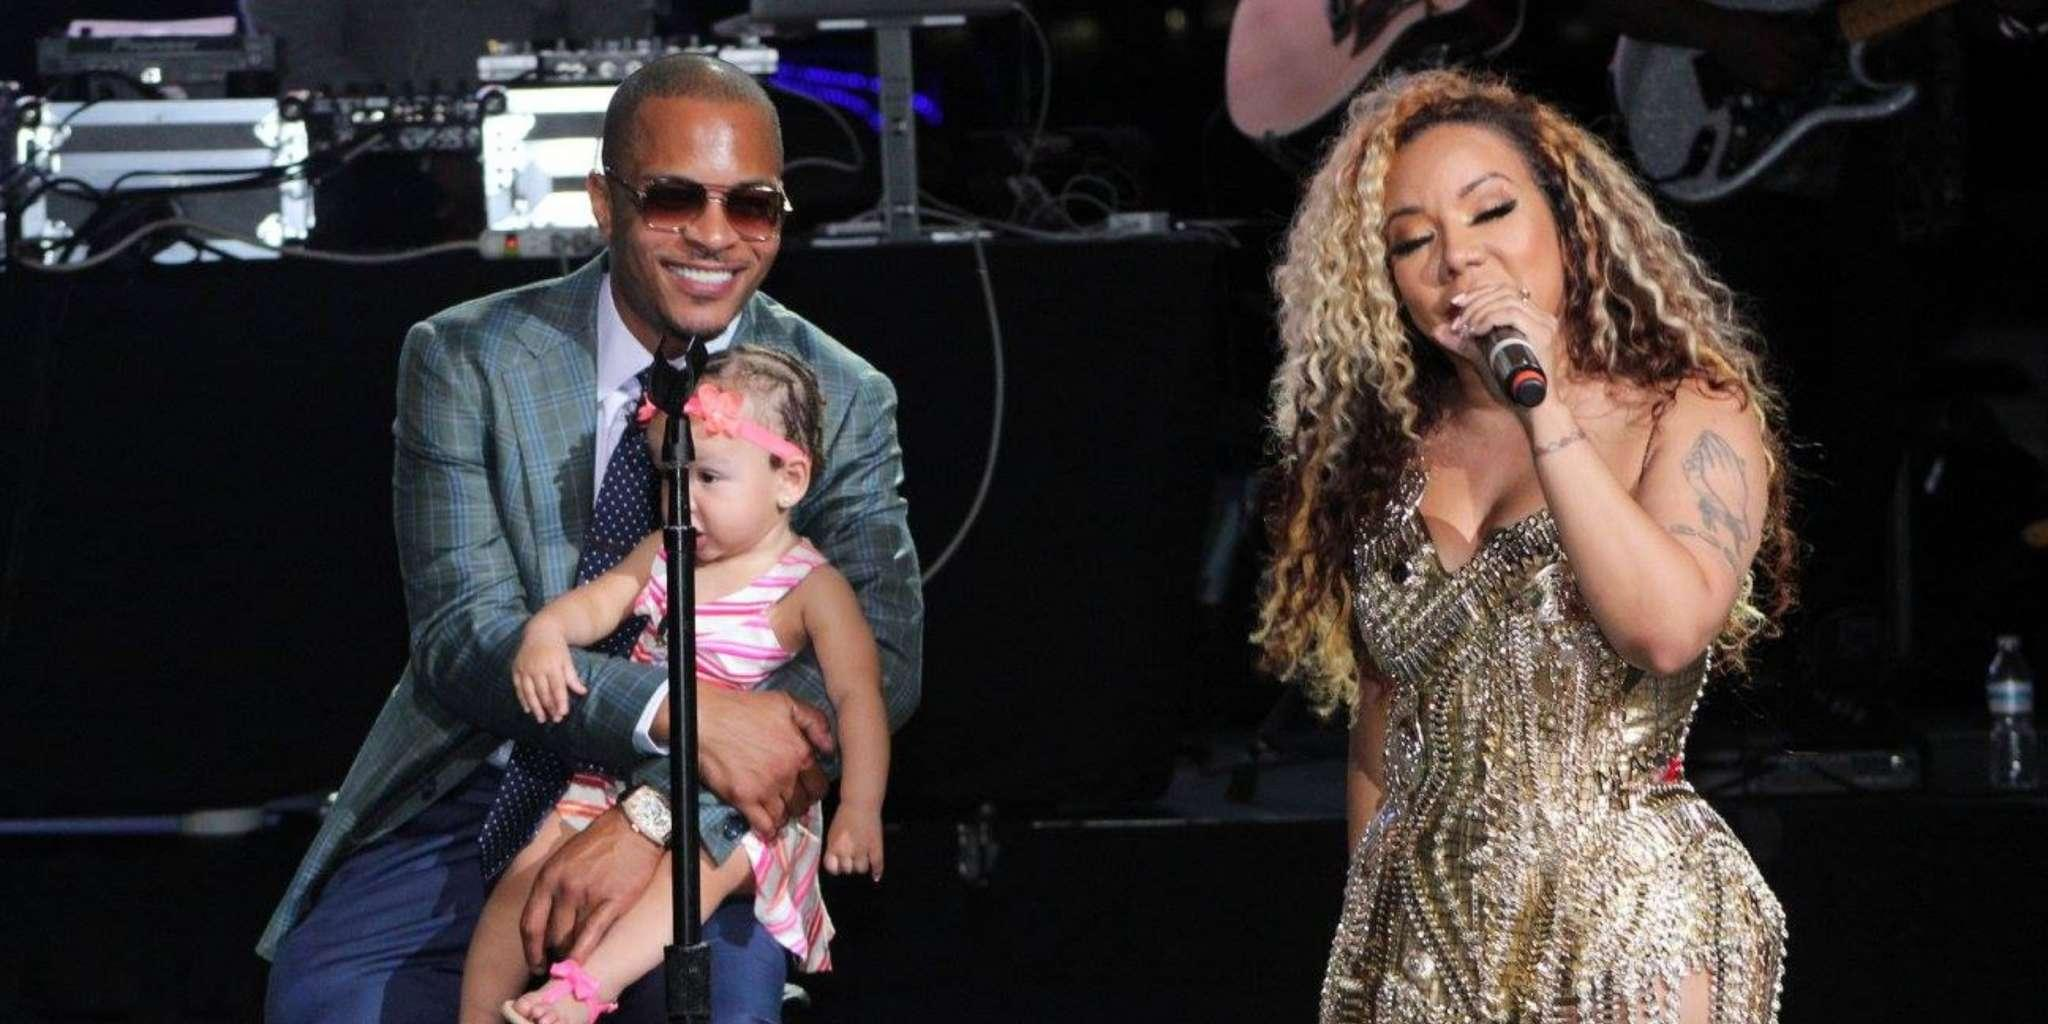 T.I. And Tiny Harris Have The Best Time In Barcelona - Check Out Tiny Riding Her Bike (Videos)